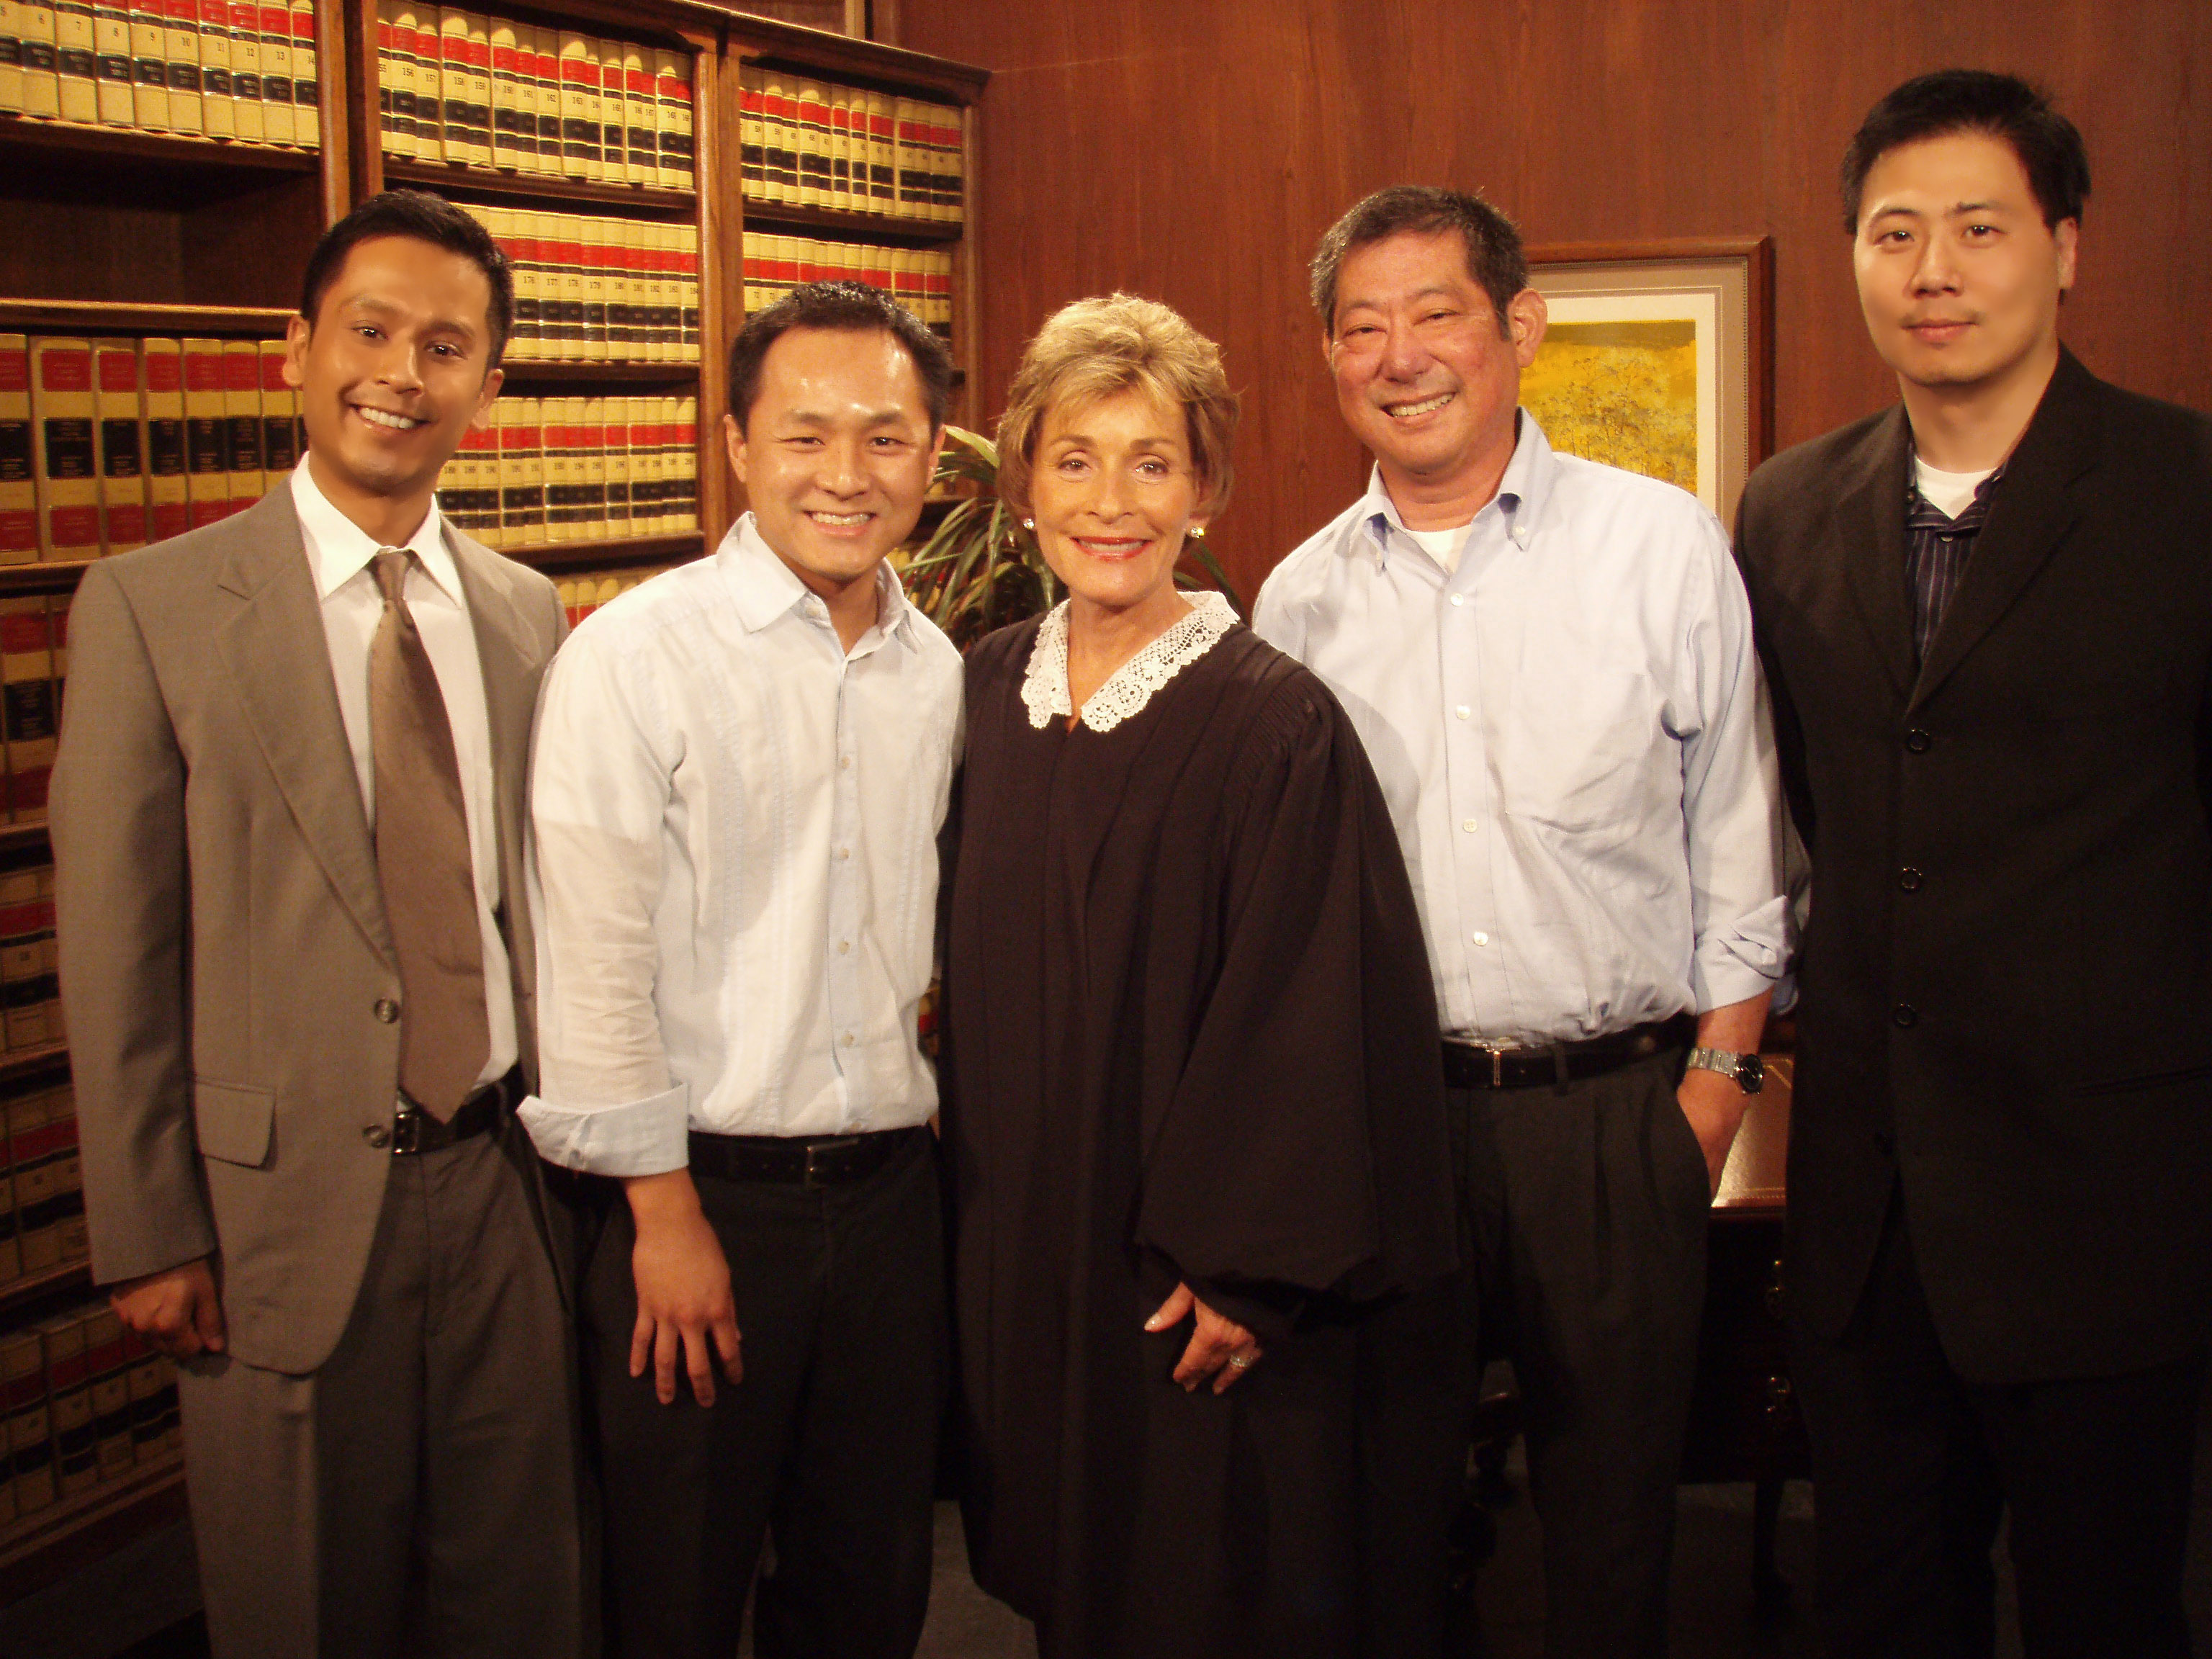 Judge Judy facts